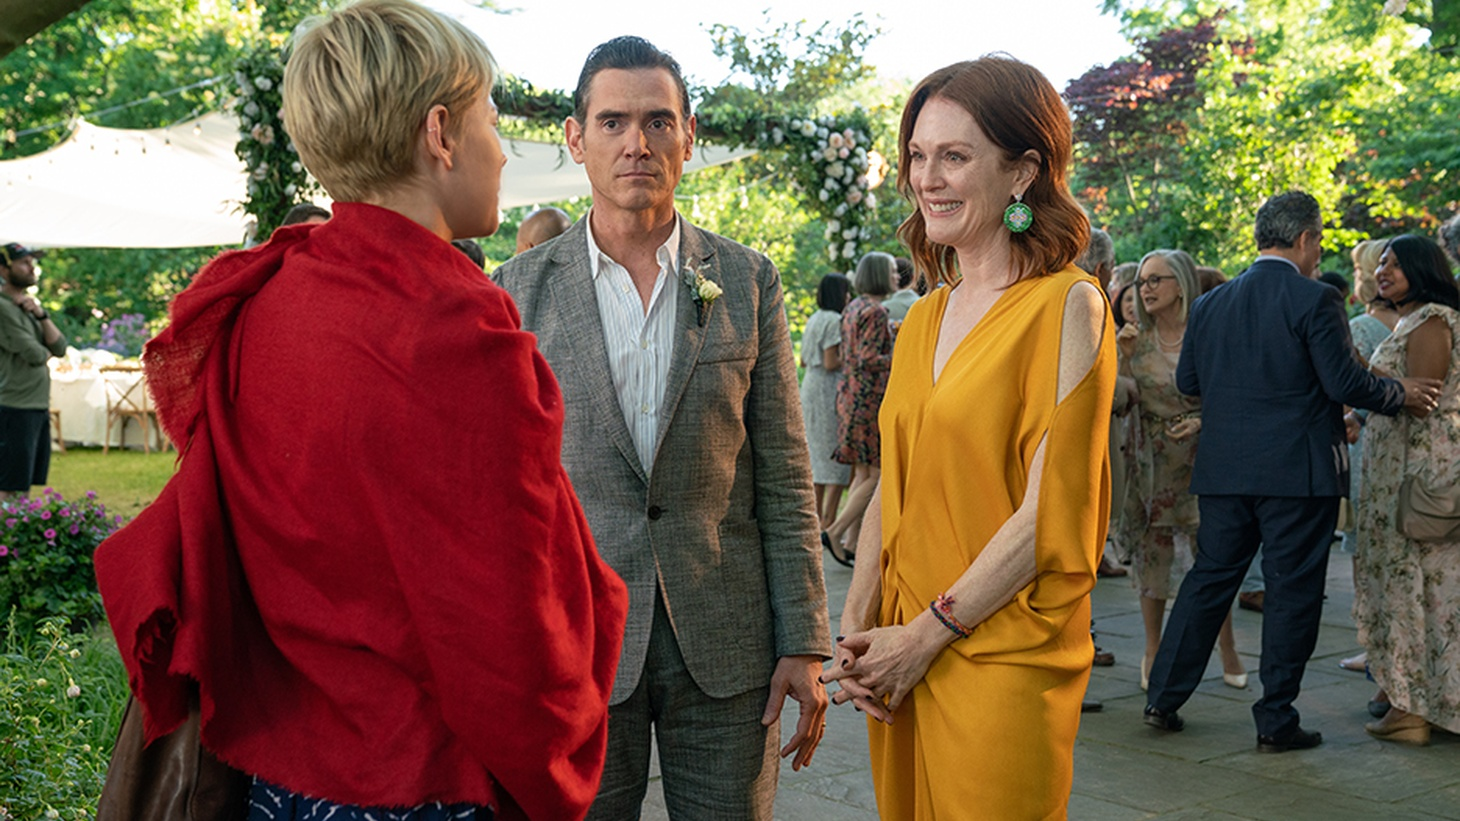 Michelle Williams as Isabel, Billy Crudup as Oscar, Julianne Moore as Theresa in 'After the Wedding.'